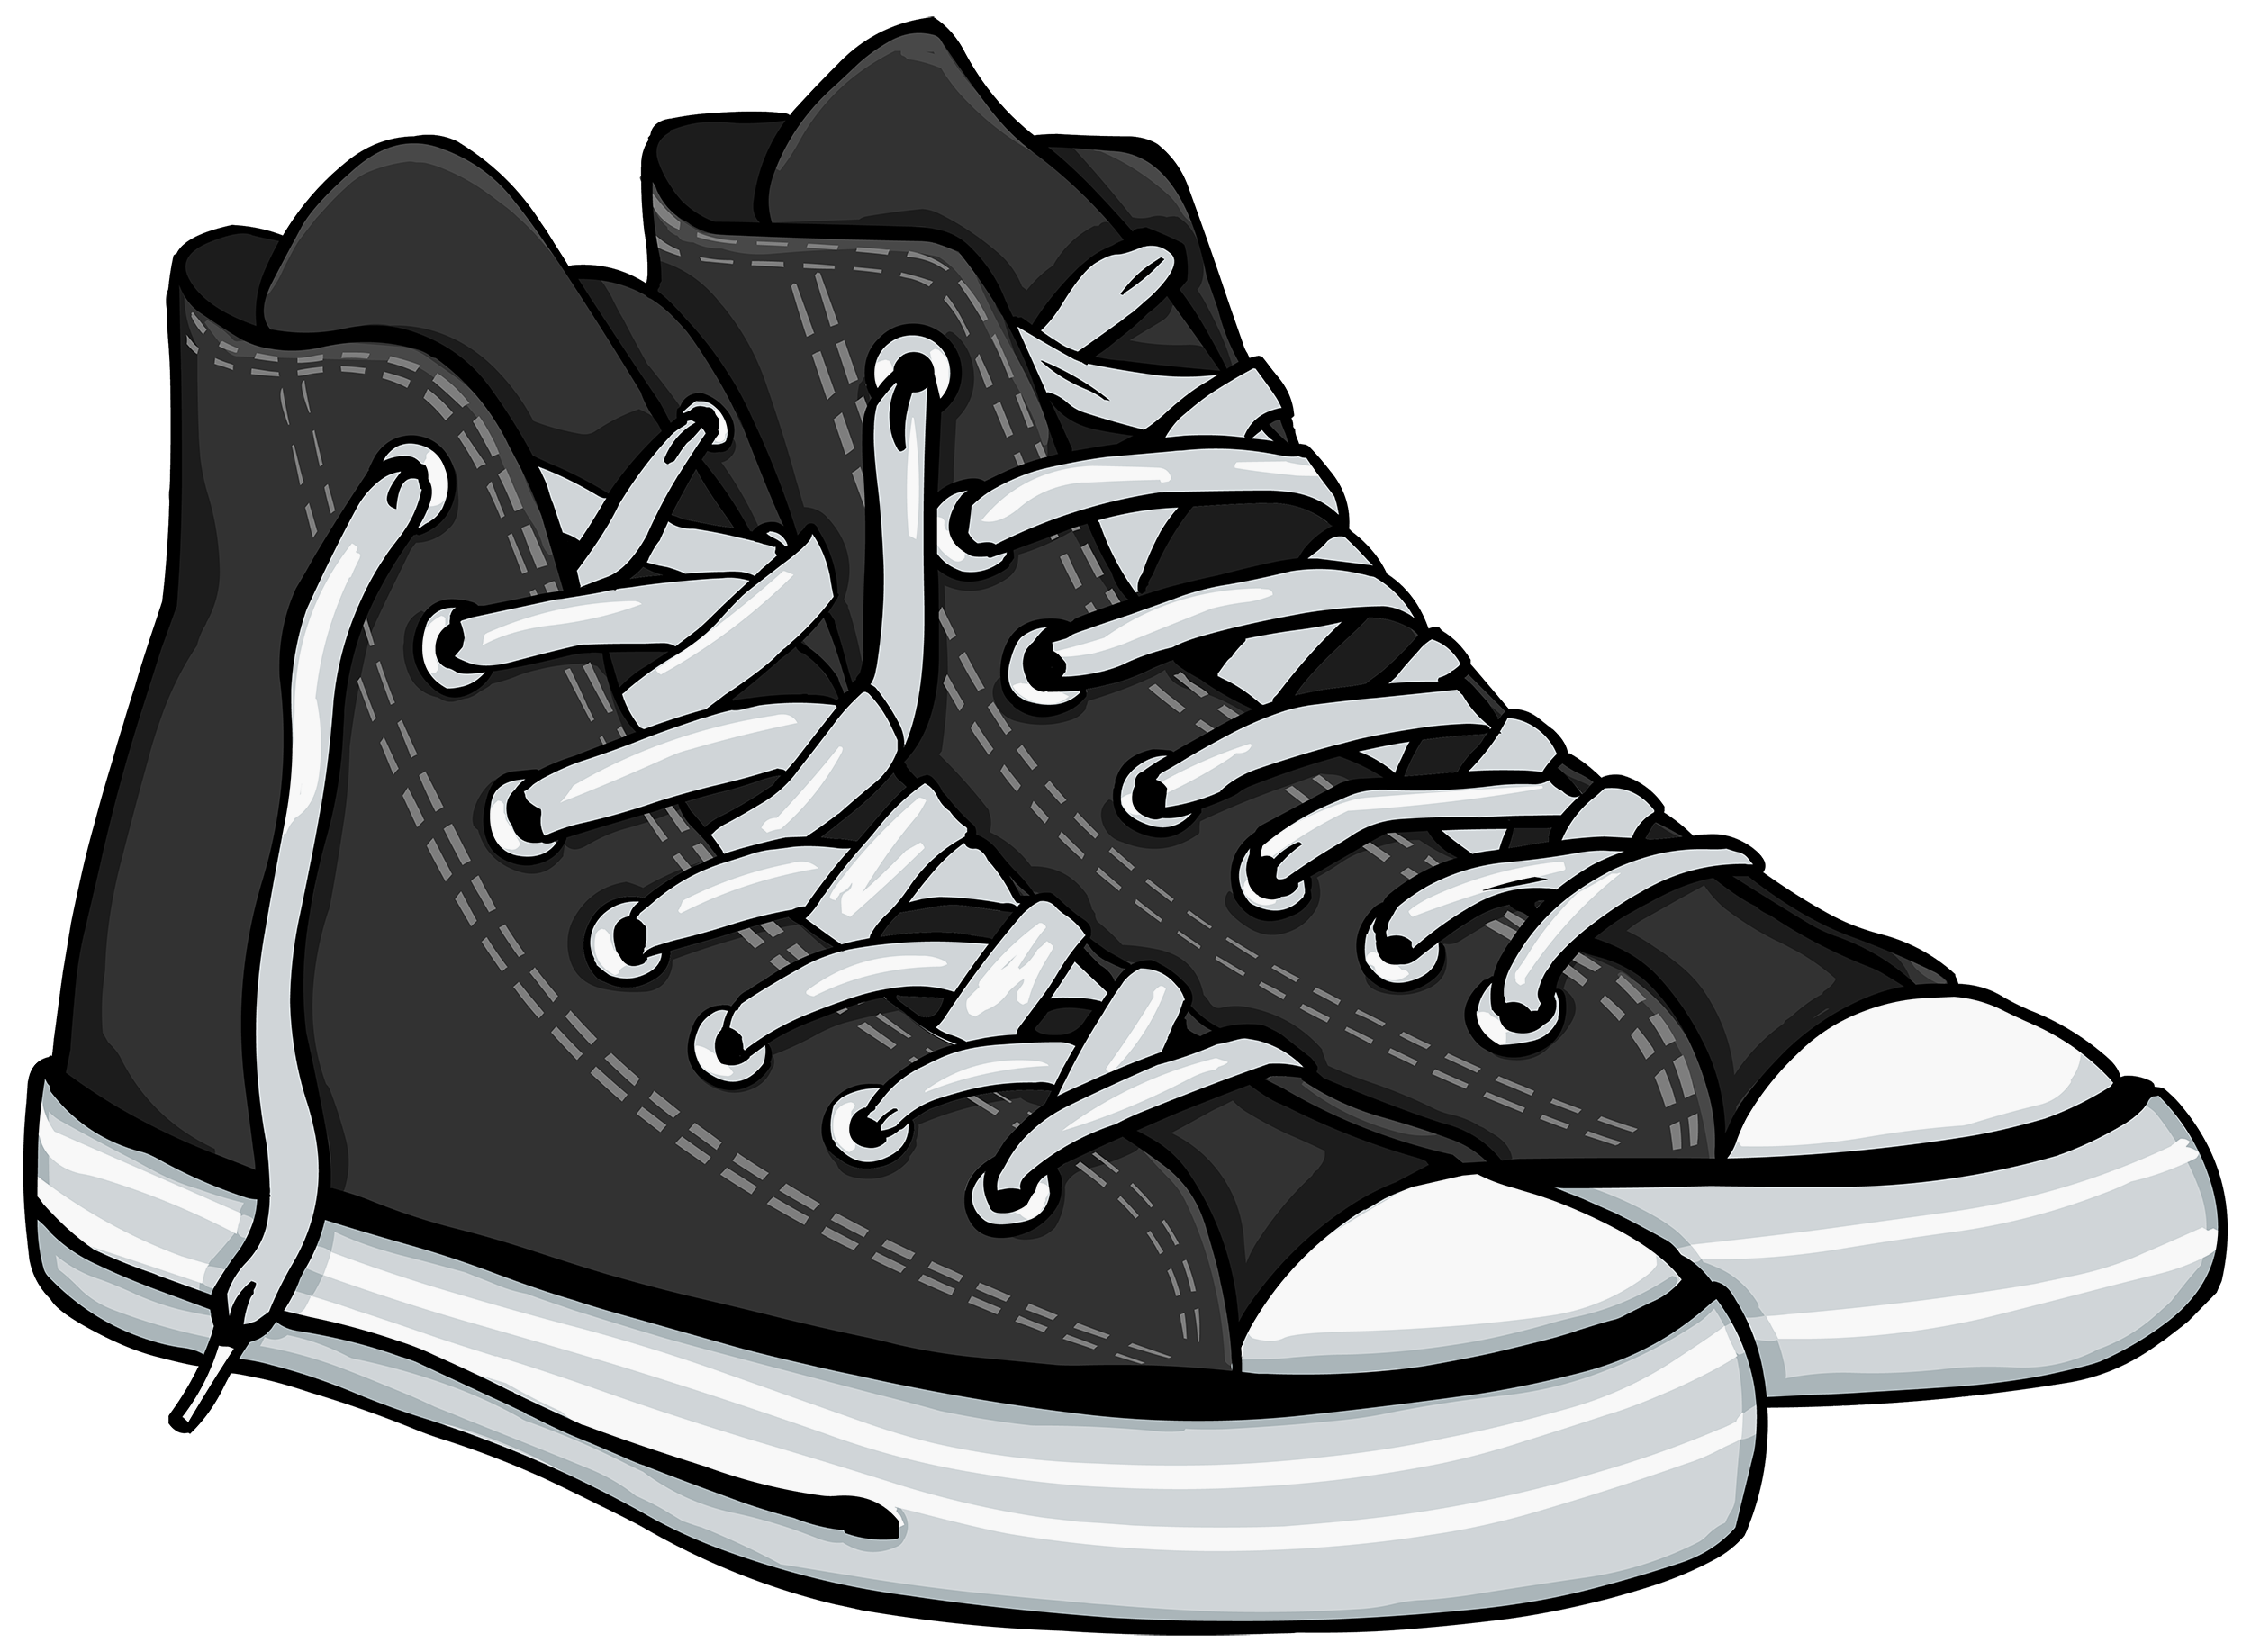 Tennis shoes clipart black and white collection in 2019.